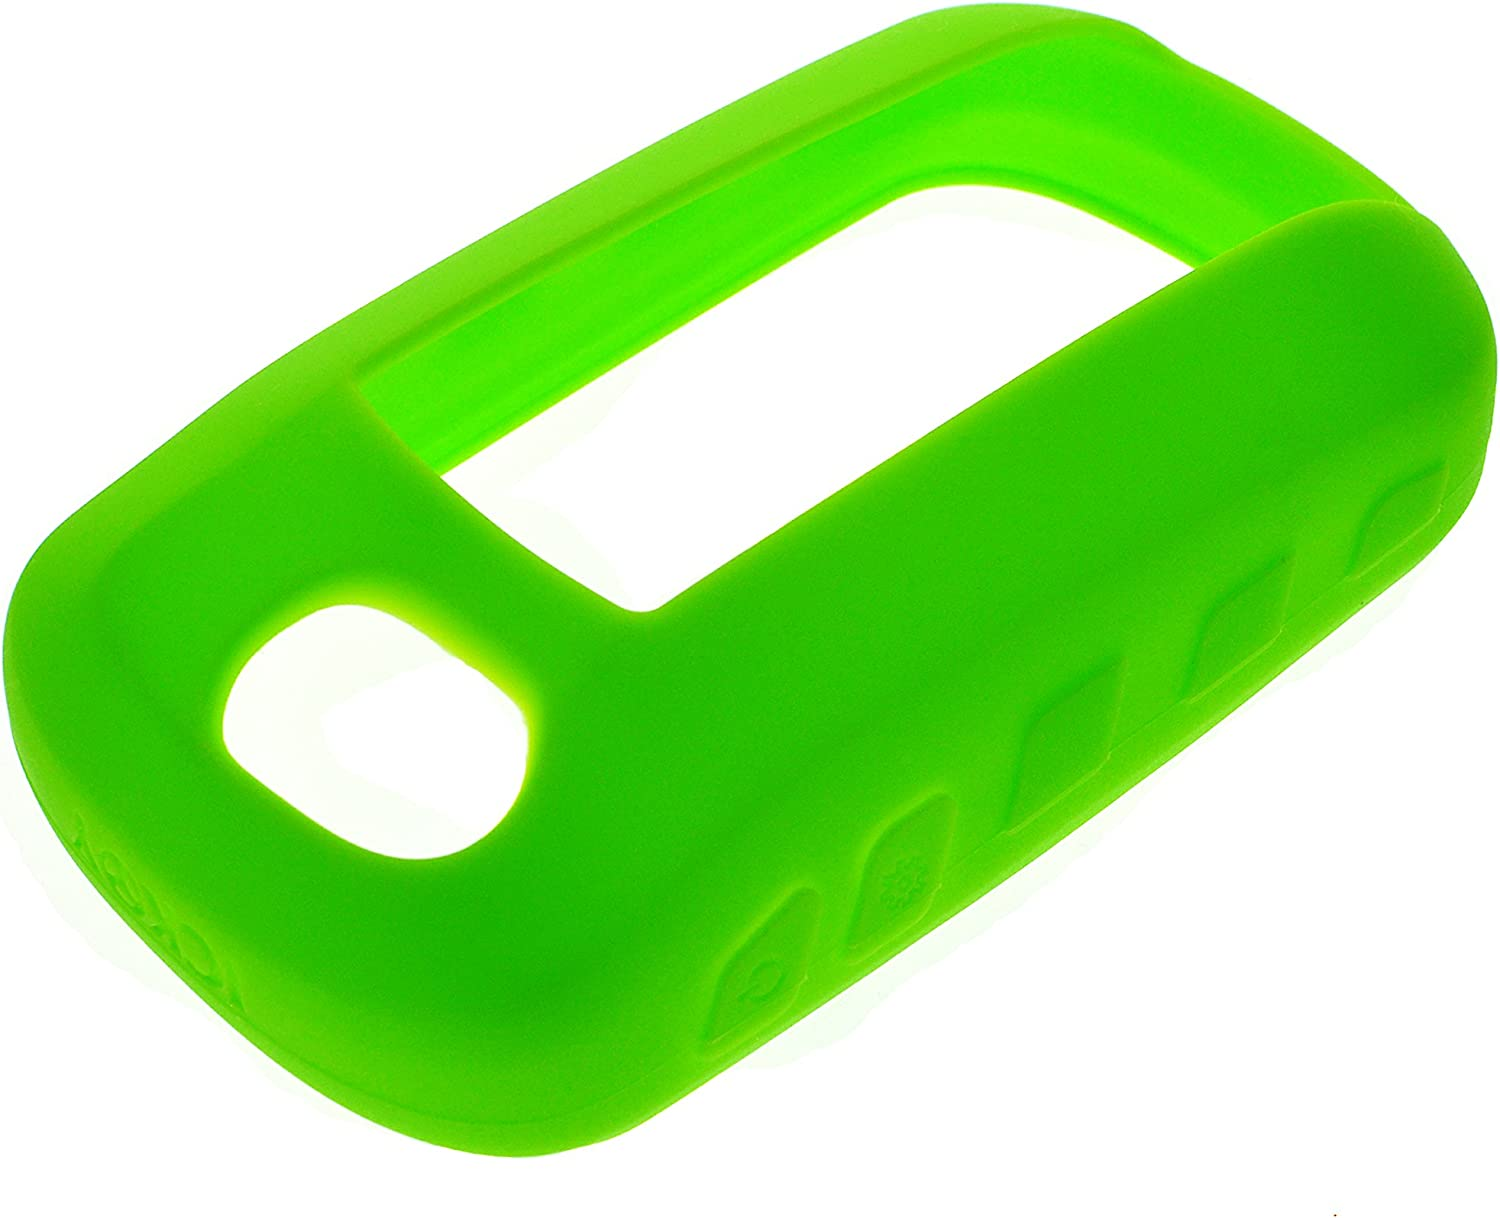 New Green Skin Protect Silicone Rubber Case for GPS Garmin Oregon 600 600T 650 650T 700 750 750T